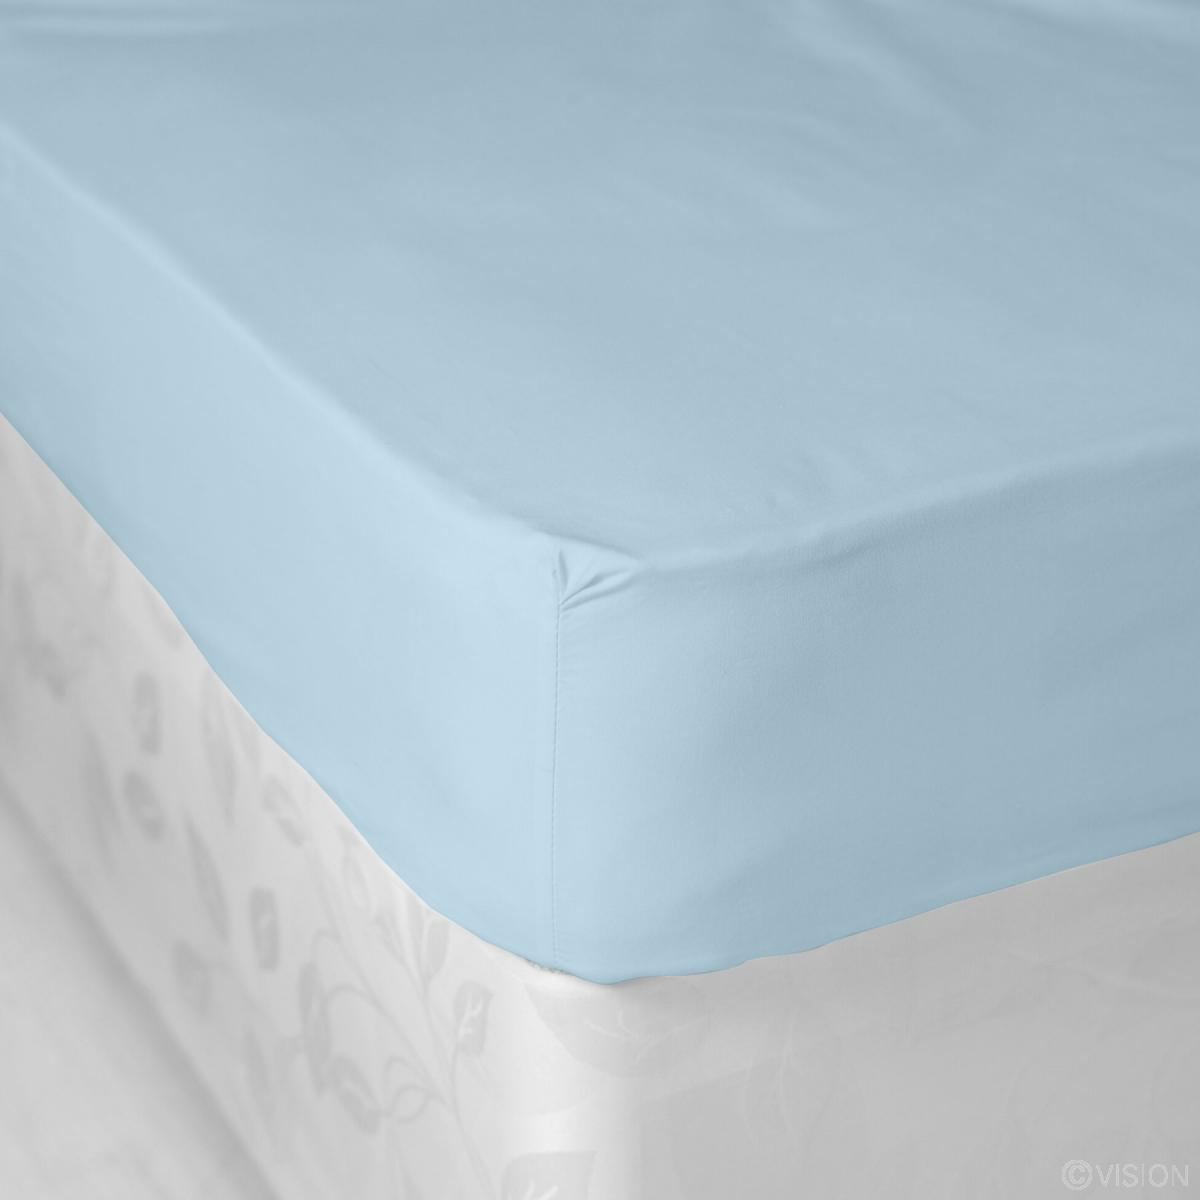 Incroyable Light Blue Plain Polycotton Fitted Bed Sheet